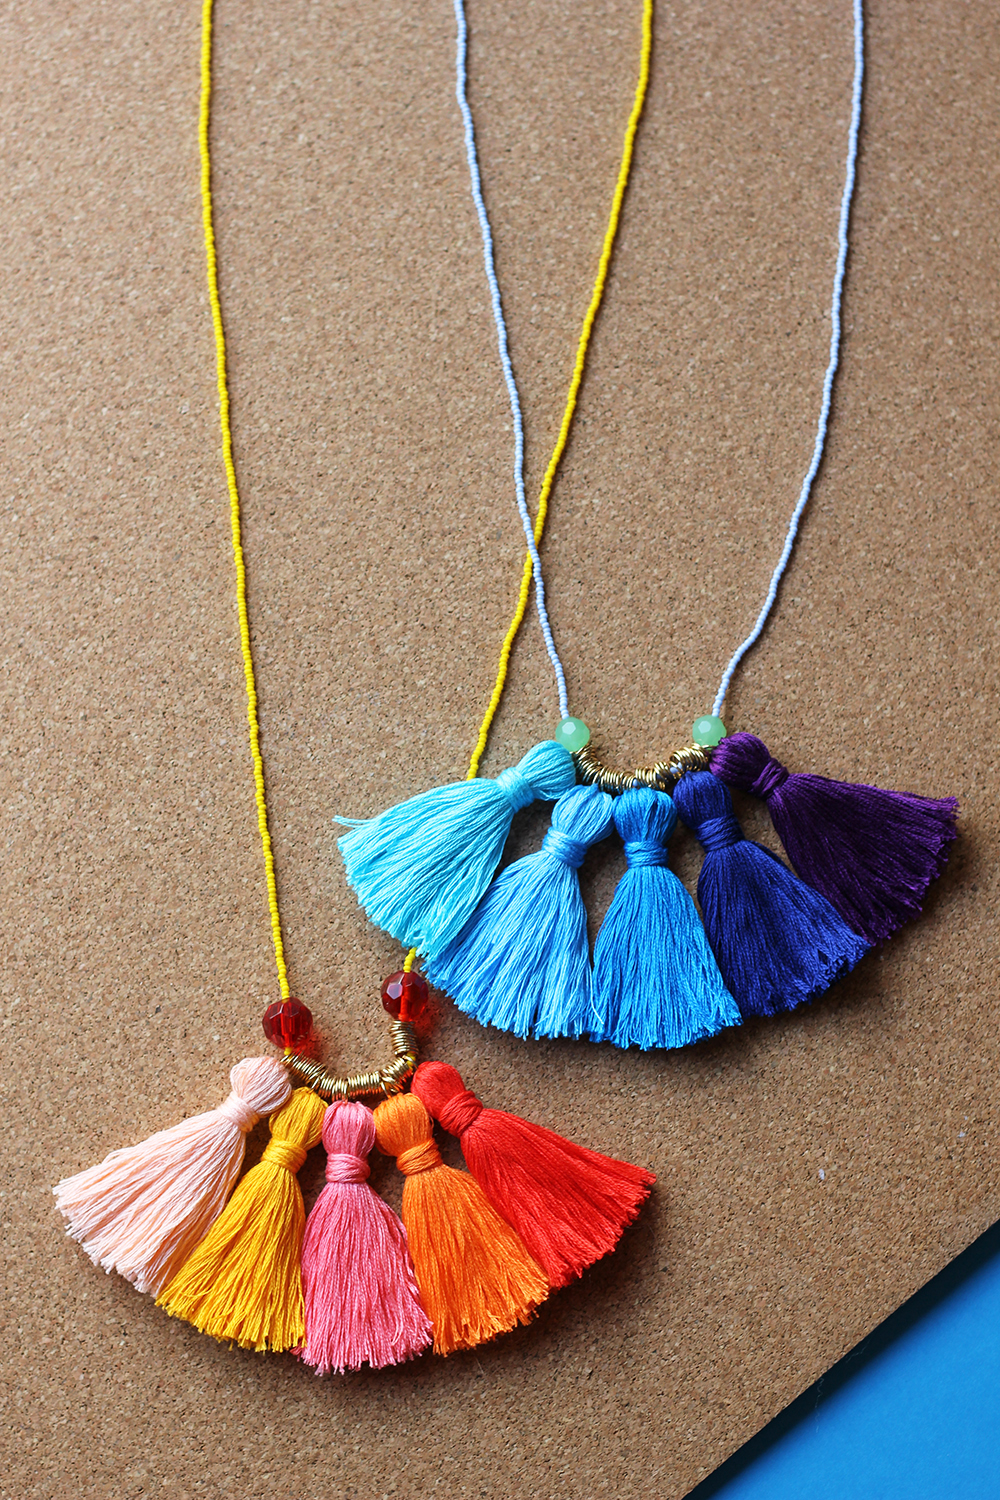 diy-tassel-necklace-18